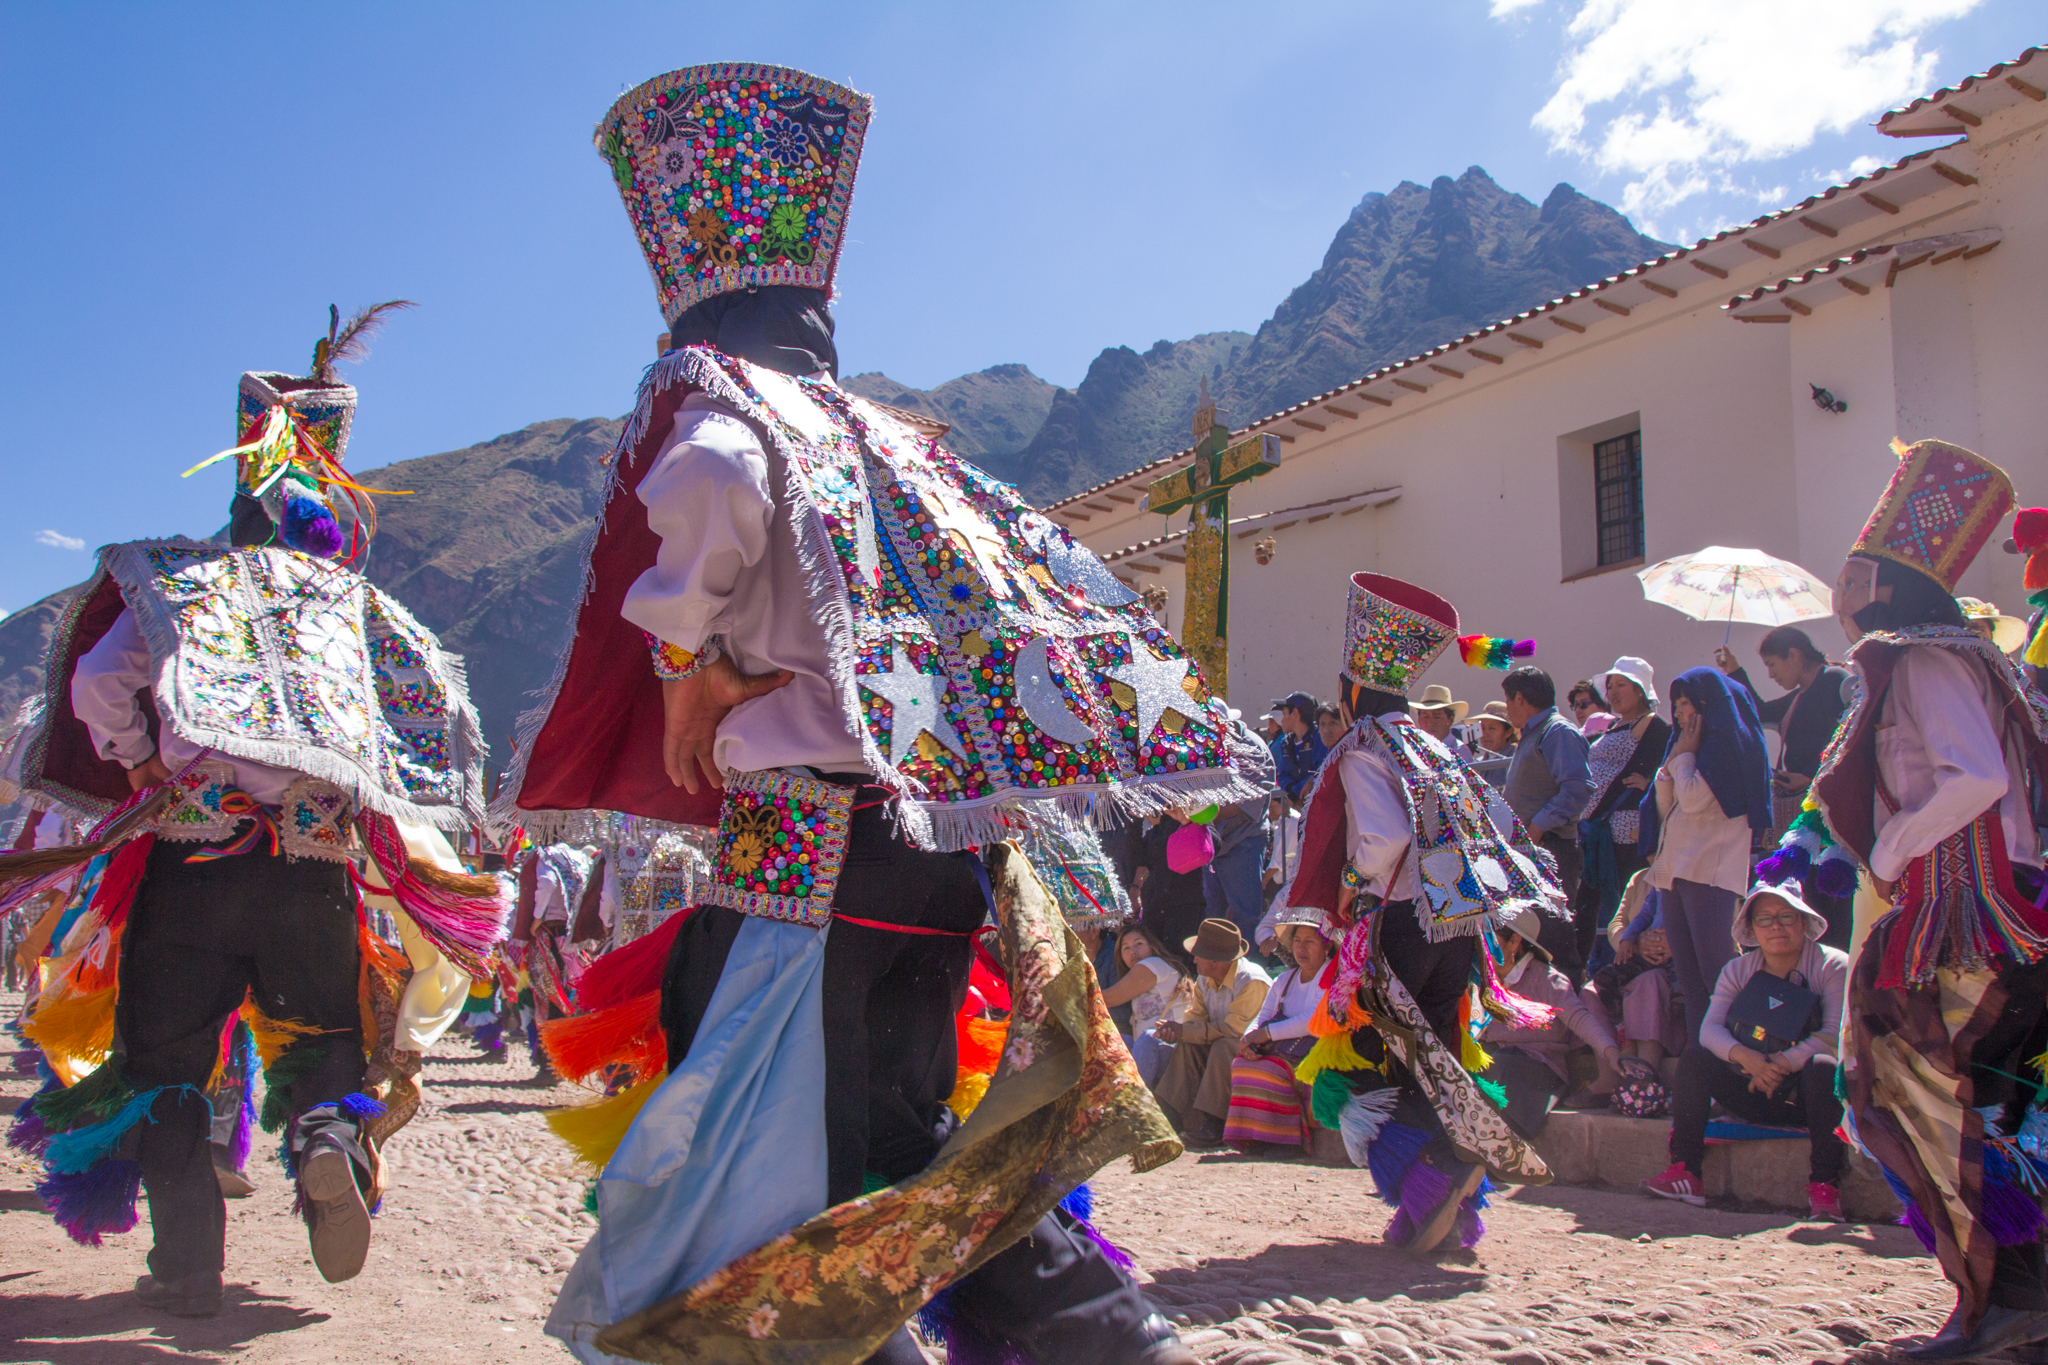 See if there are any events in the area while you are there. We got to attend this Peruvian parade and it was one of the funnest things we have done yet!